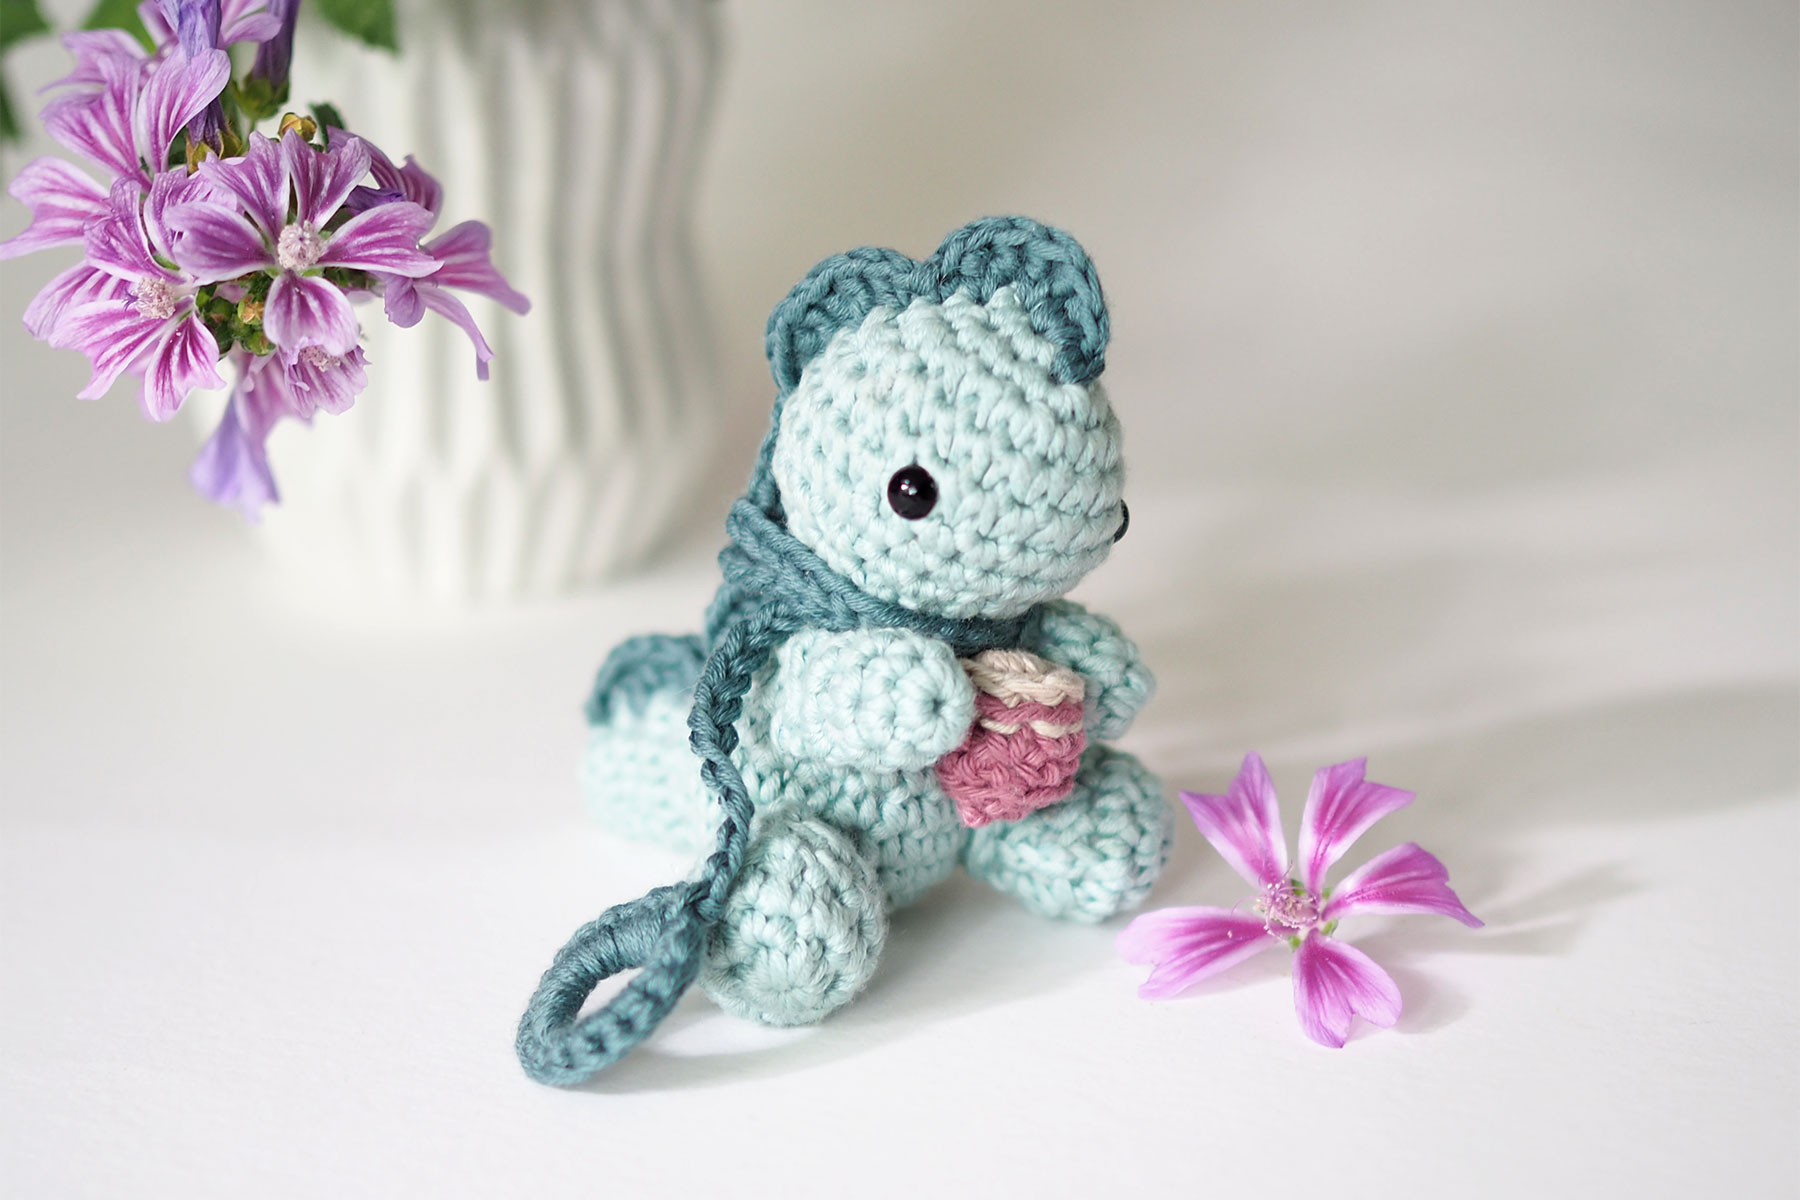 dinosaure bébé kawaii crochet fleurs mauve coton pima we are knitters laboutiquedemelimelo